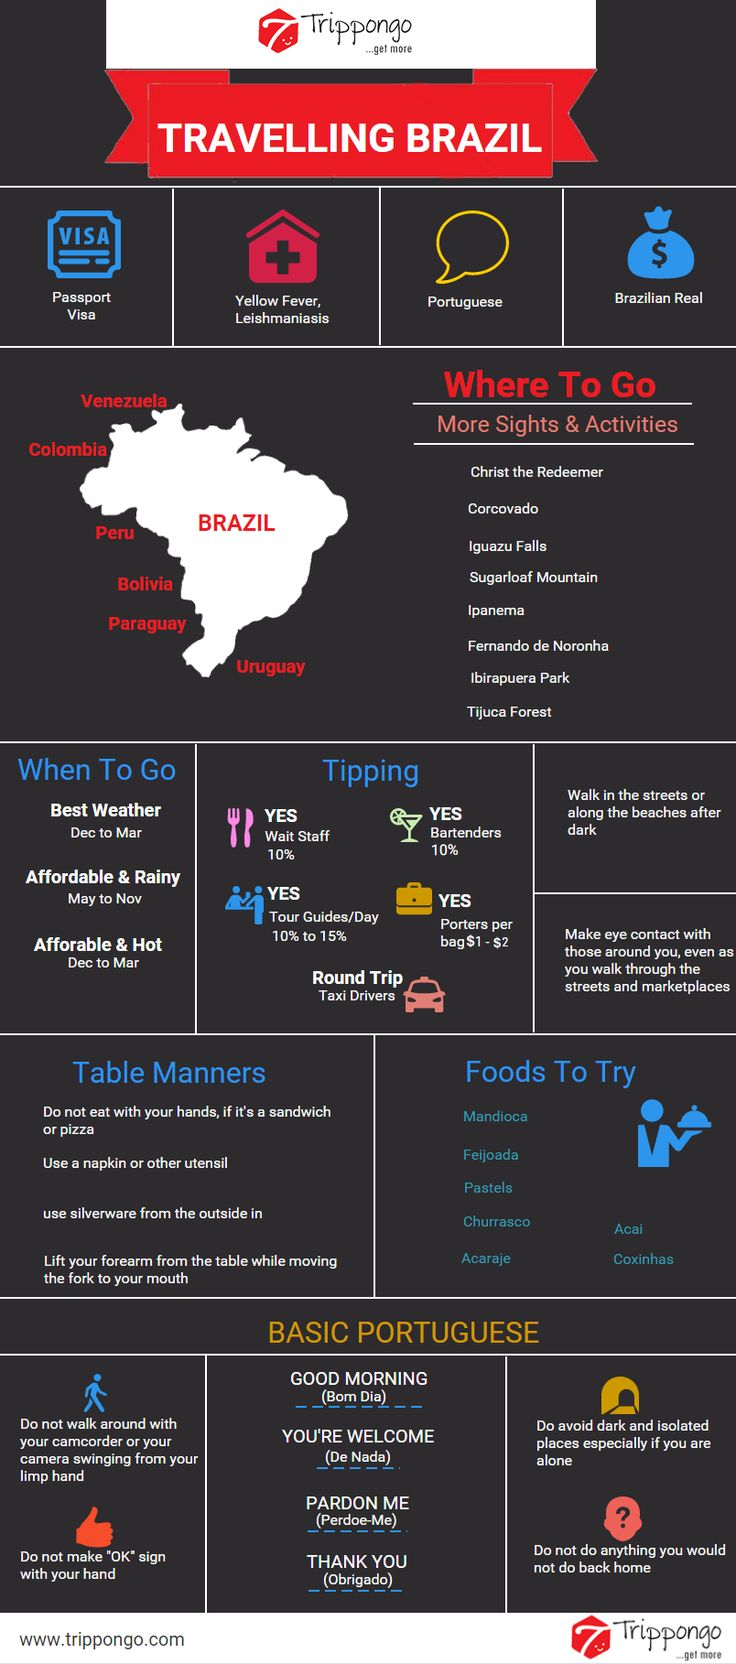 Get complete information about sightseeing and tourist destinations in Brazil travelling infographic.